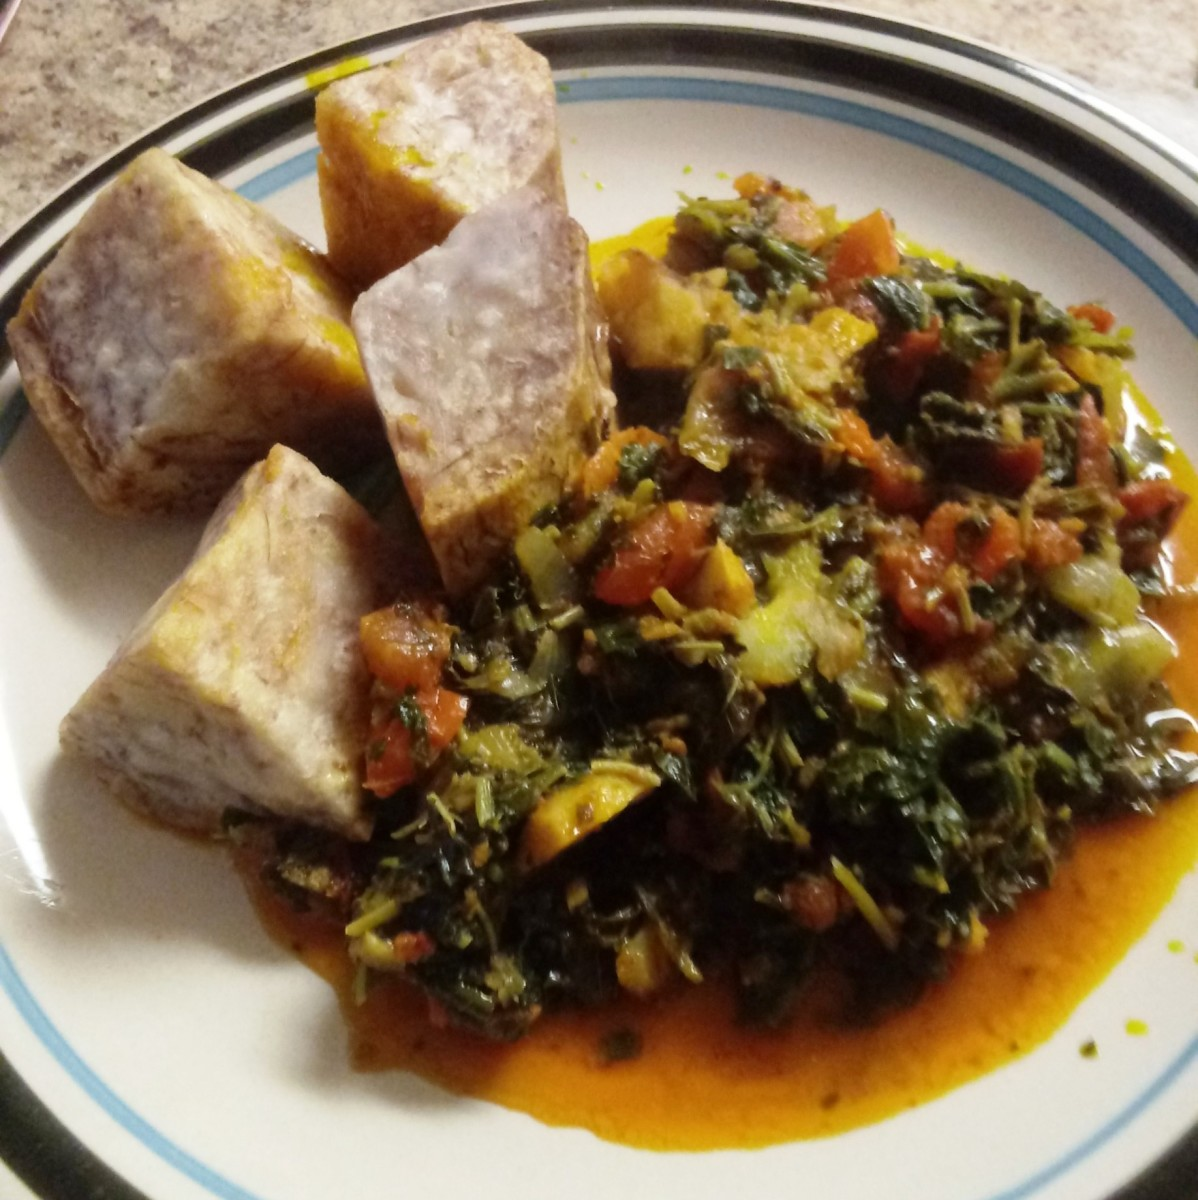 Vegetable medley with taro (yams)